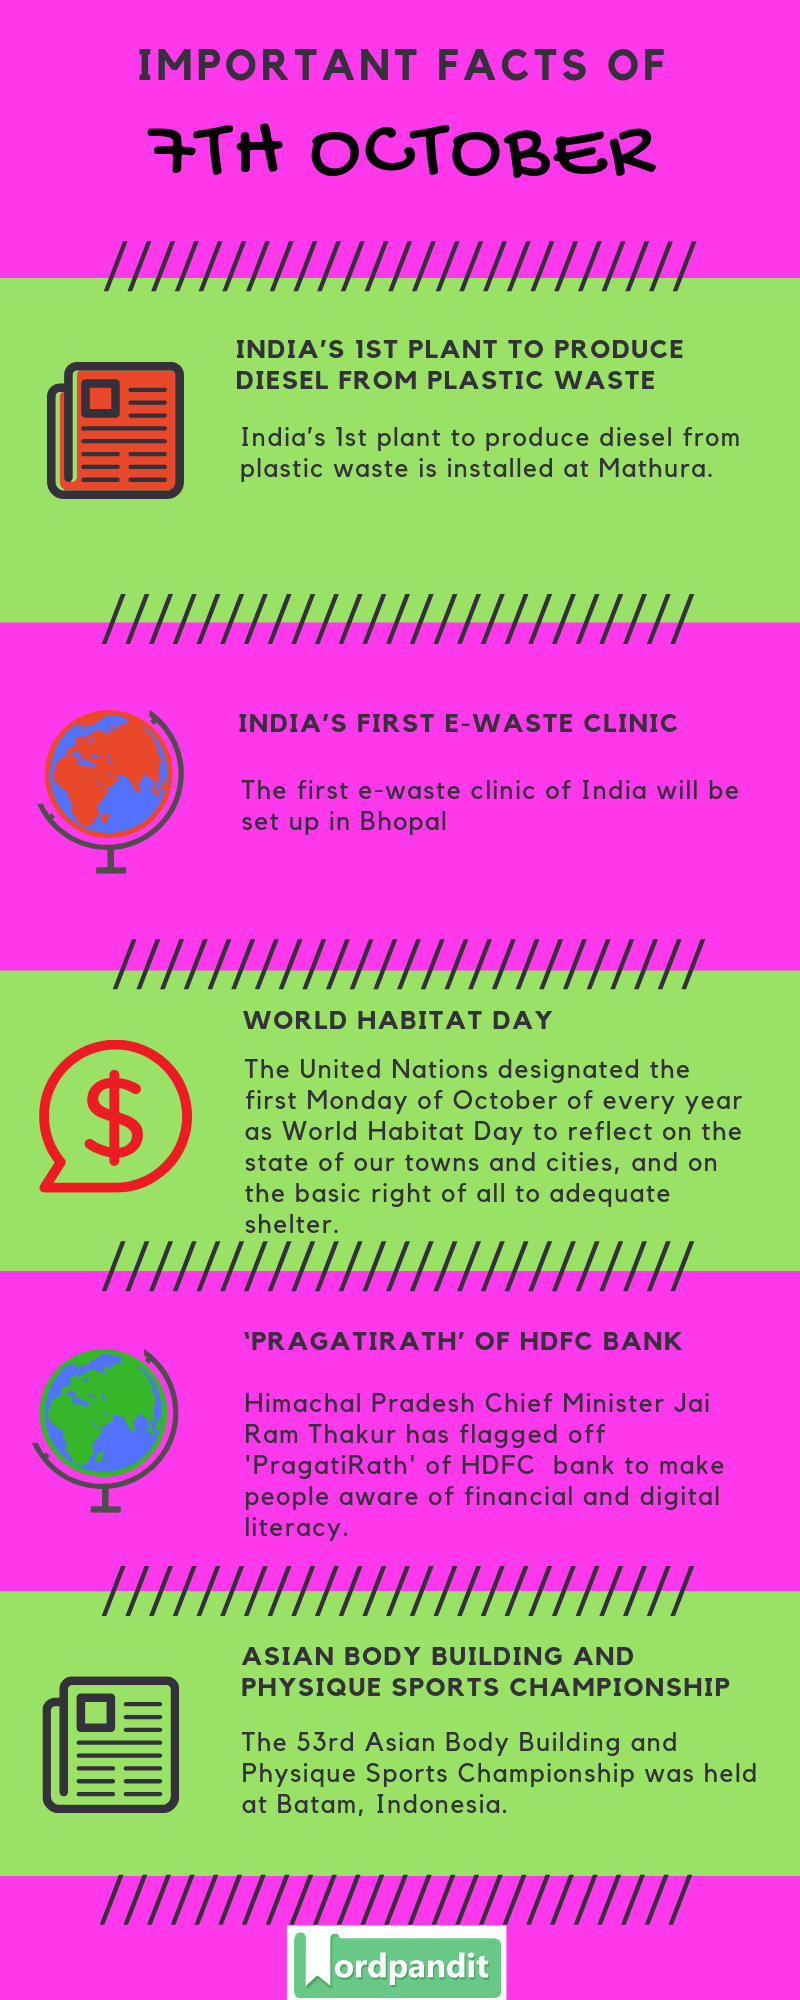 Daily Current Affairs 7 October 2019 Current Affairs Quiz 7 October 2019 Current Affairs Infographic